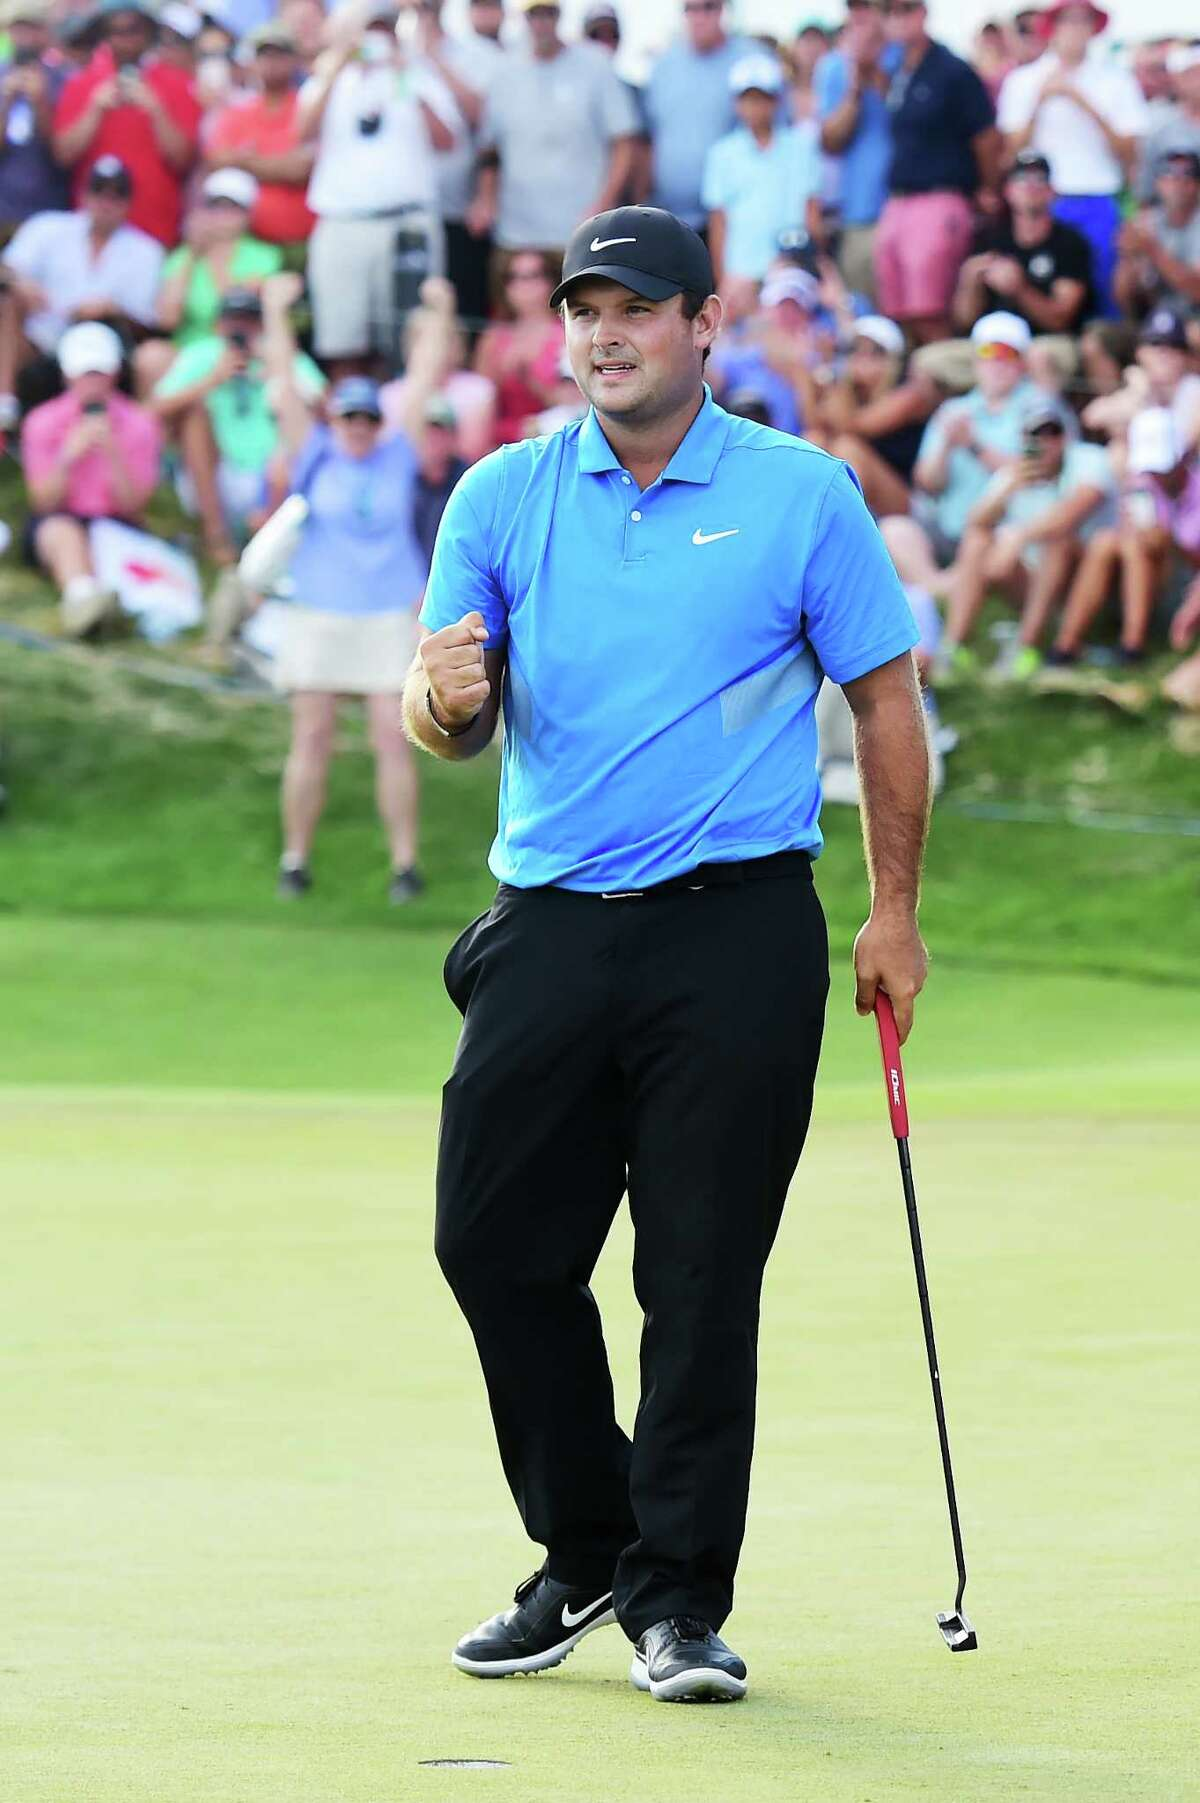 JERSEY CITY, NEW JERSEY - AUGUST 11: Patrick Reed of the United States celebrates on the 18th green after winning during the final round of The Northern Trust at Liberty National Golf Club on August 11, 2019 in Jersey City, New Jersey. (Photo by Jared C. Tilton/Getty Images)